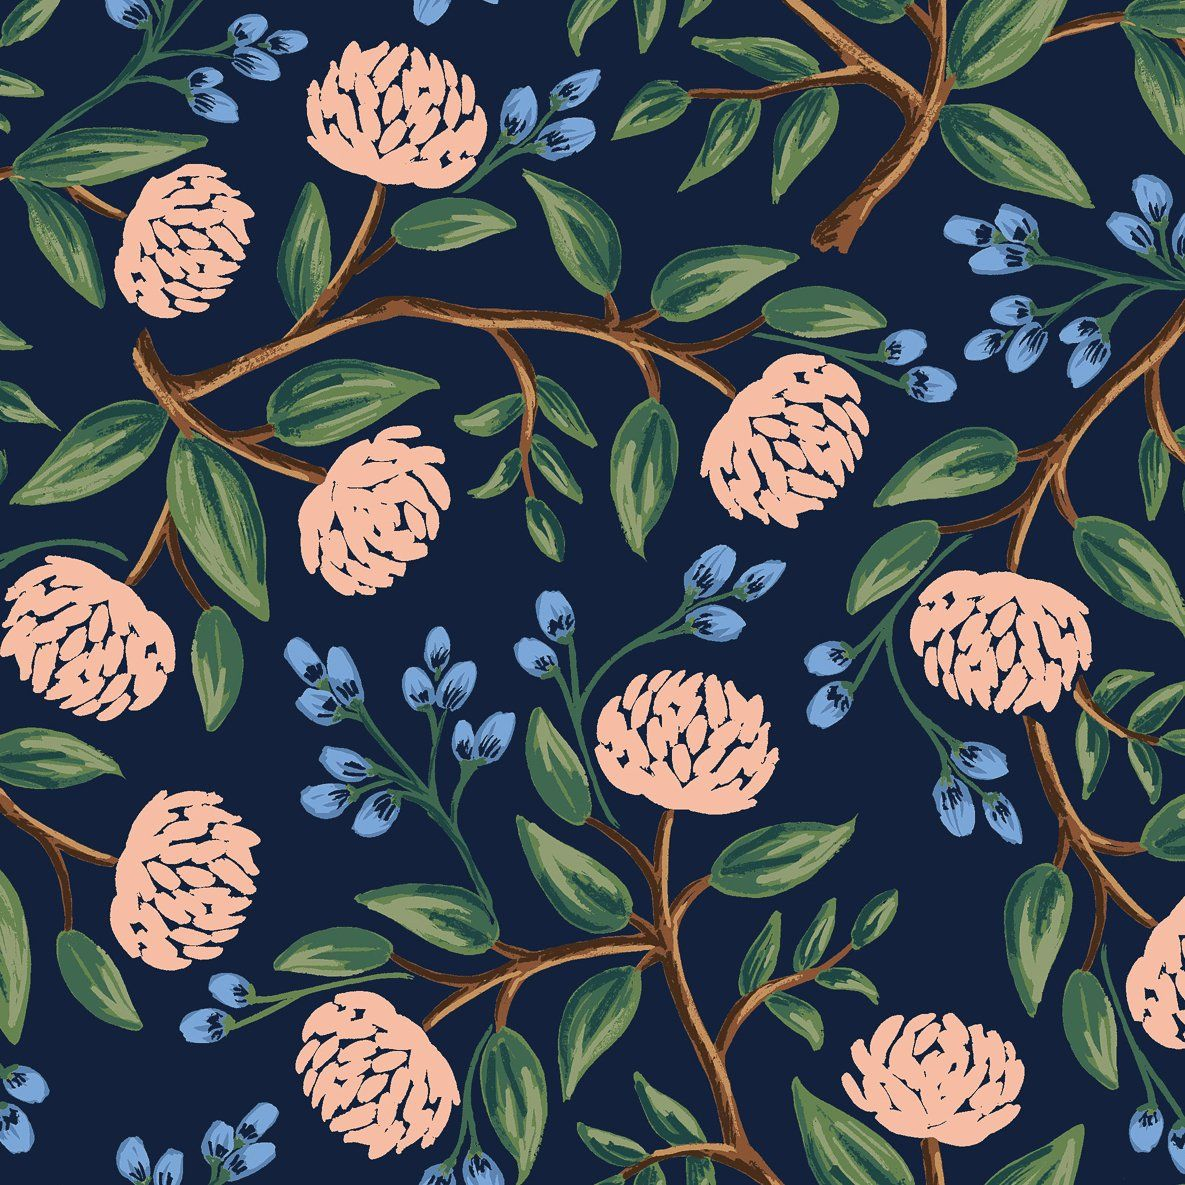 Wildwood by Rifle Paper Co : Peonies in Navy : Cotton and Steel #bluepeonies